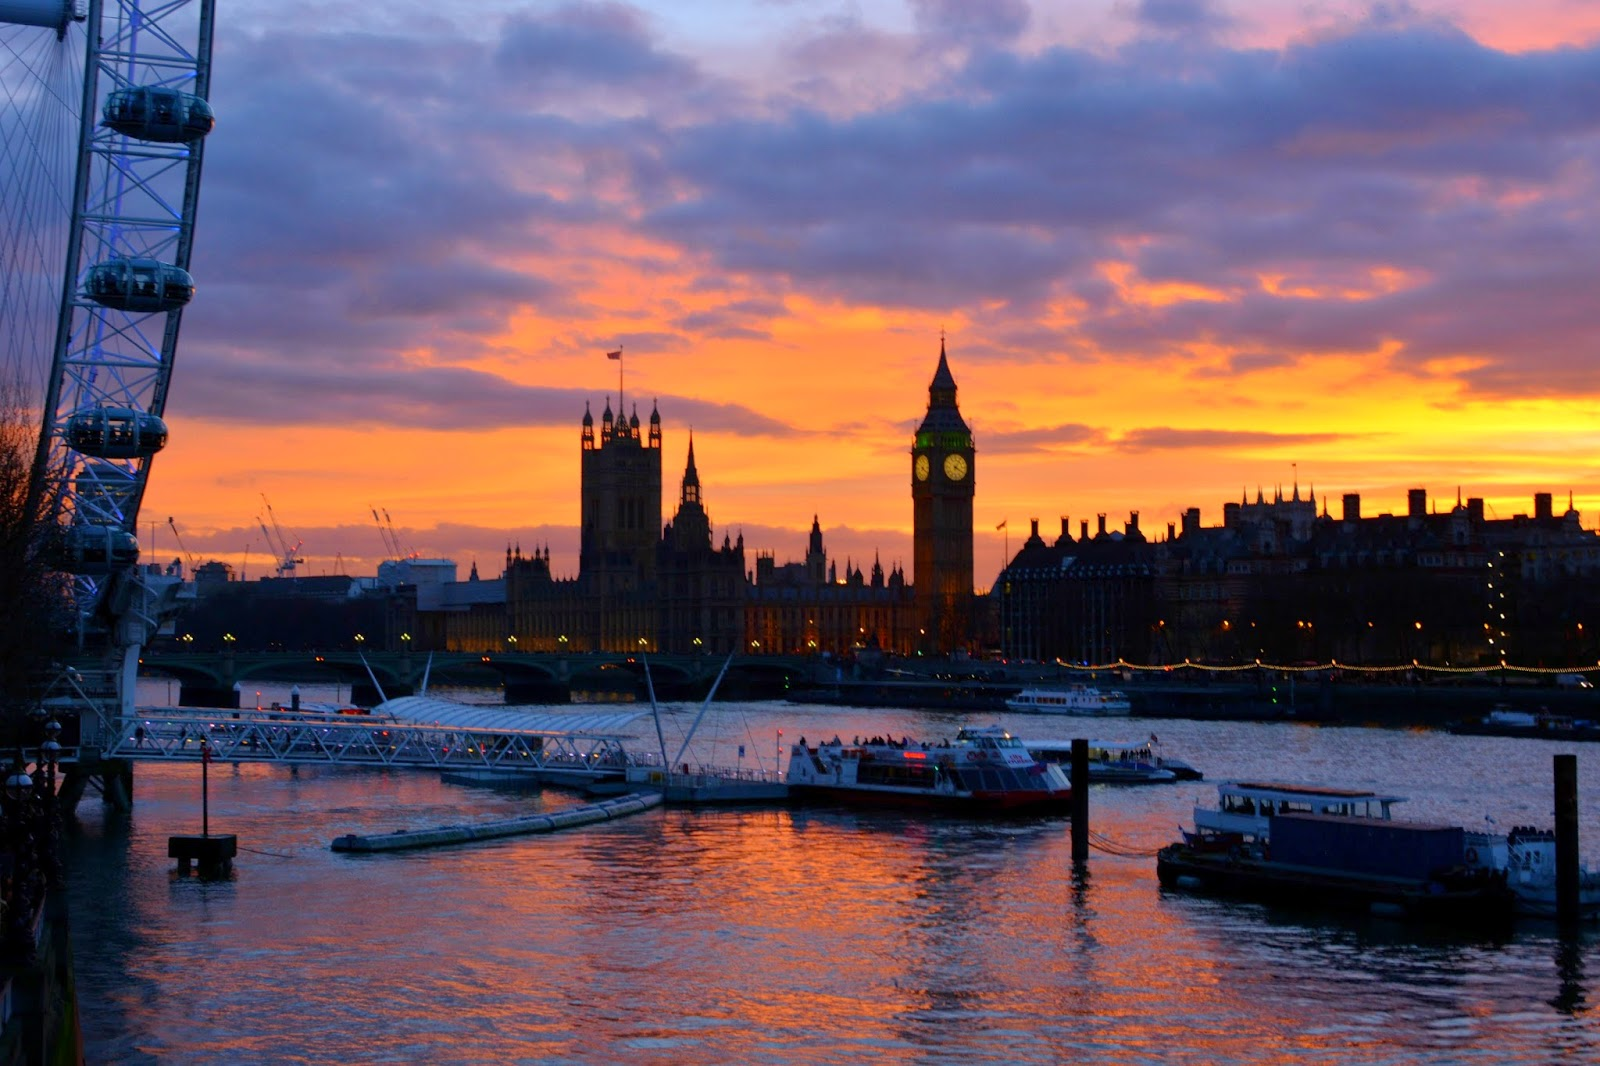 Sunset over Westminster in London